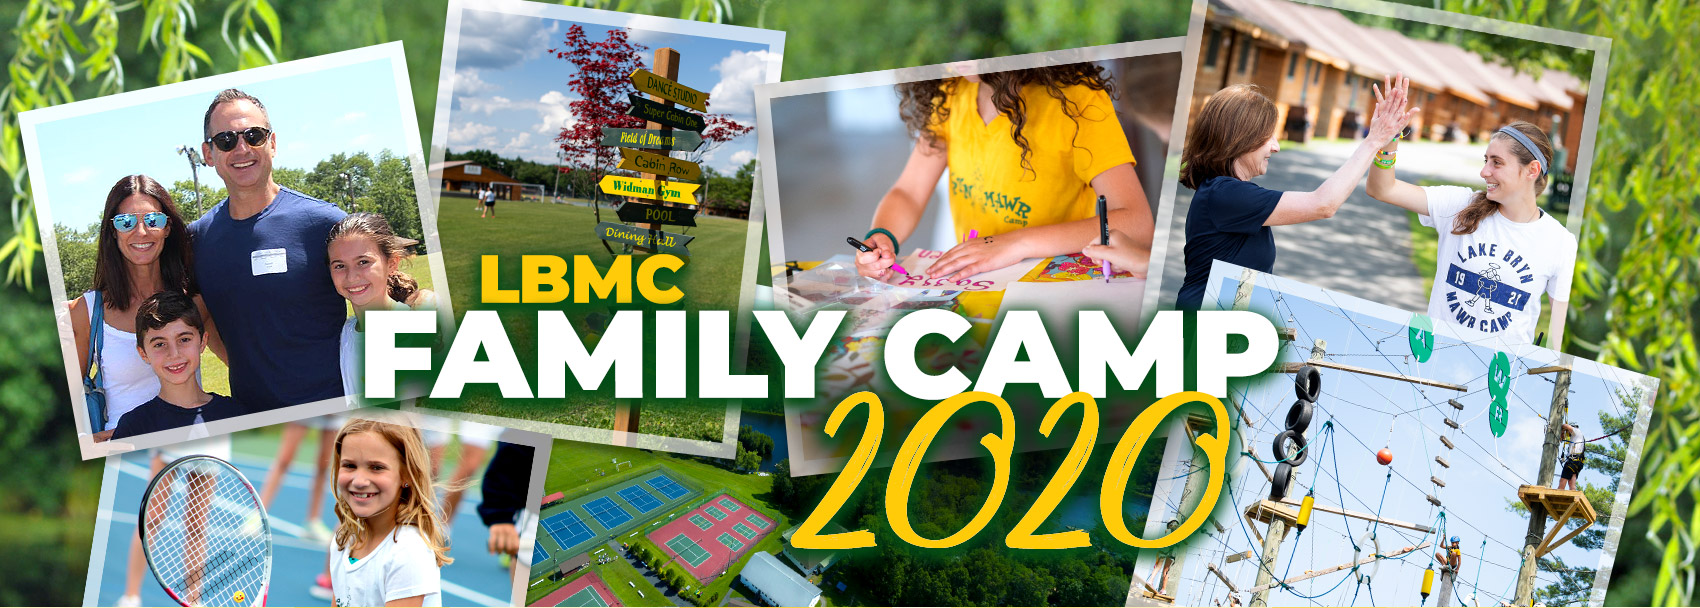 Family Camp 2020